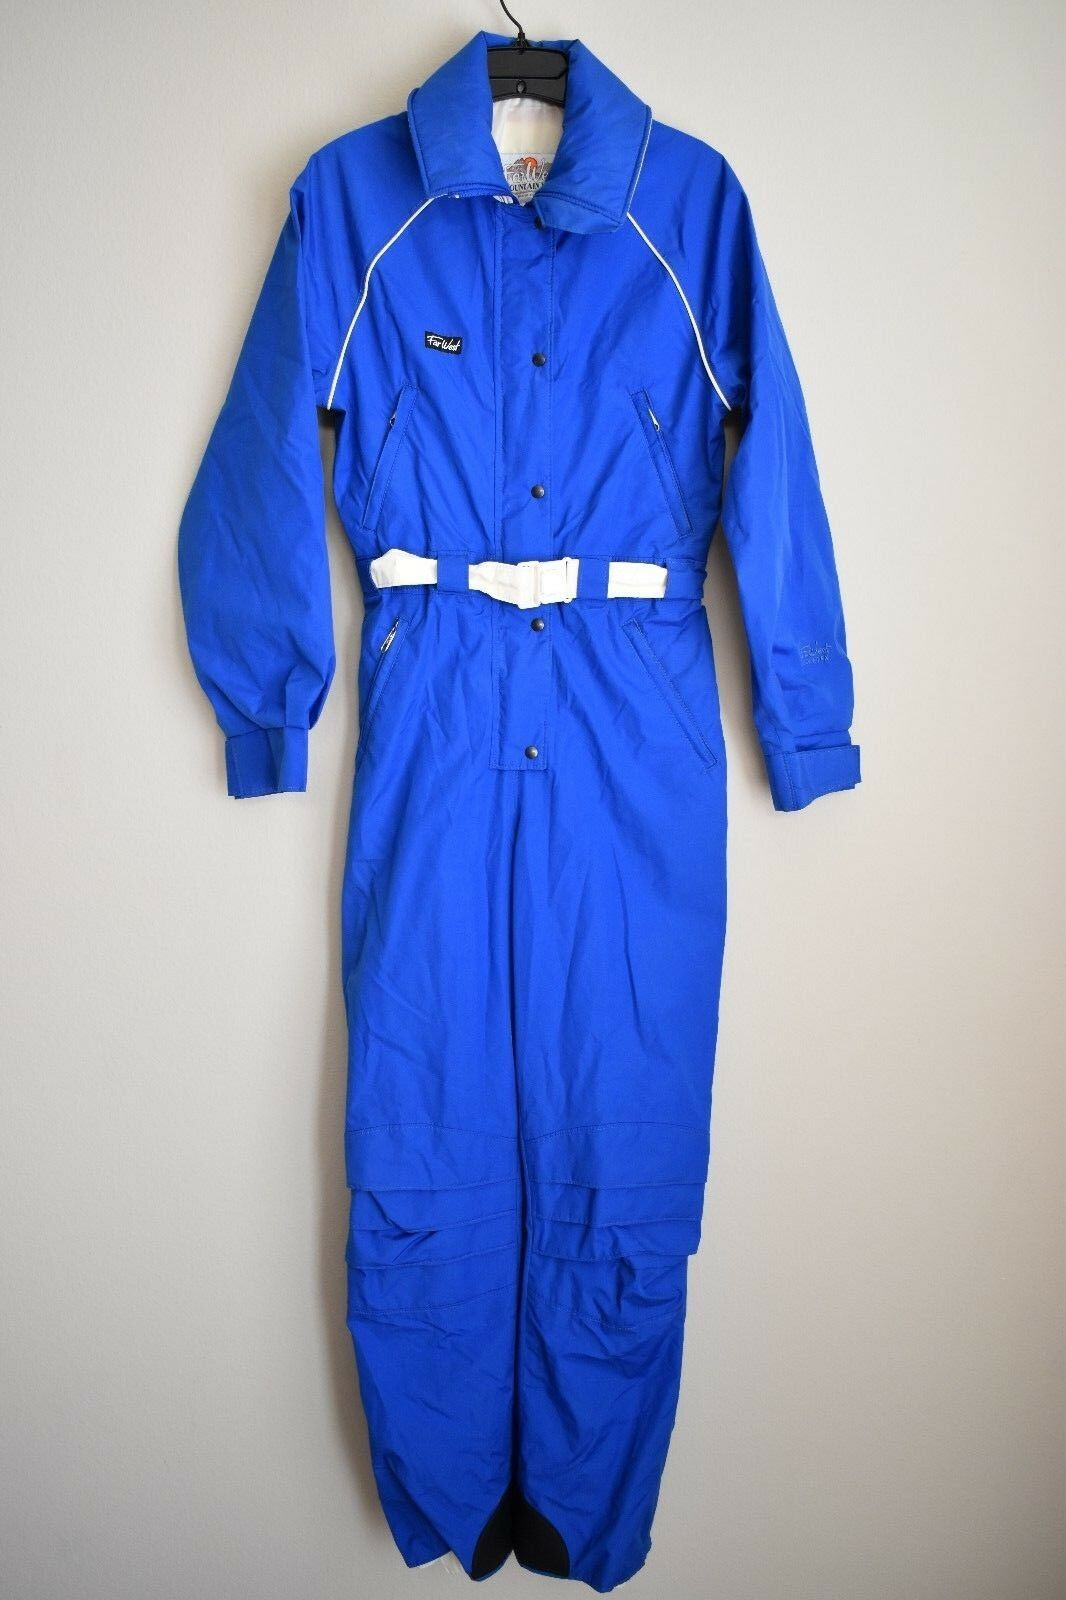 VINTAGE WOMENS  FAR WEST GORE-TEX SKI SUIT SNOWSUIT NYLON NON-INSULATED SZ SMALL  shop makes buying and selling